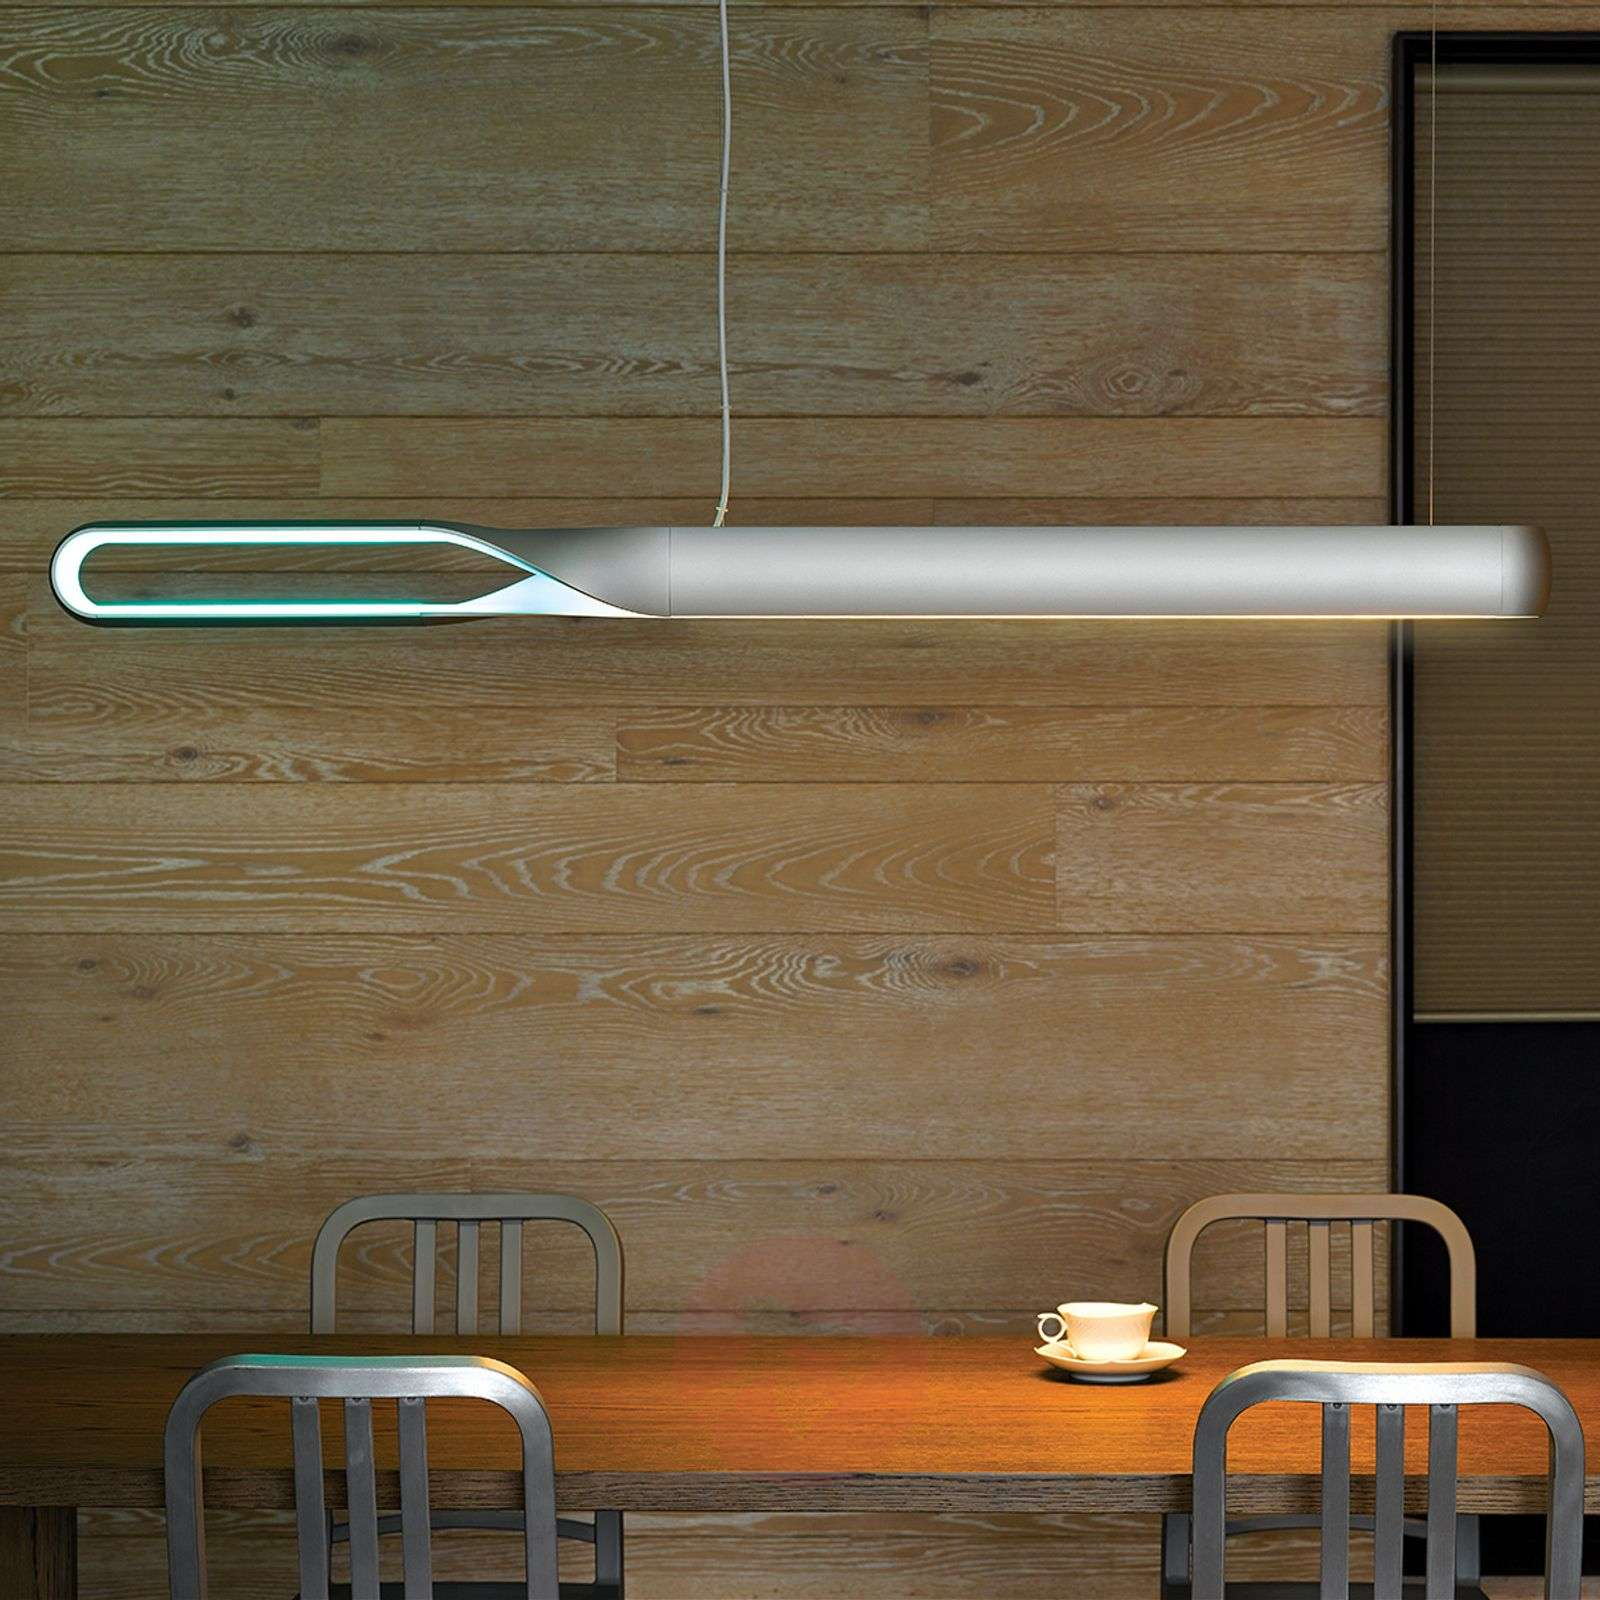 Infinito designer LED hanging light with RGB LEDs-7751030-01